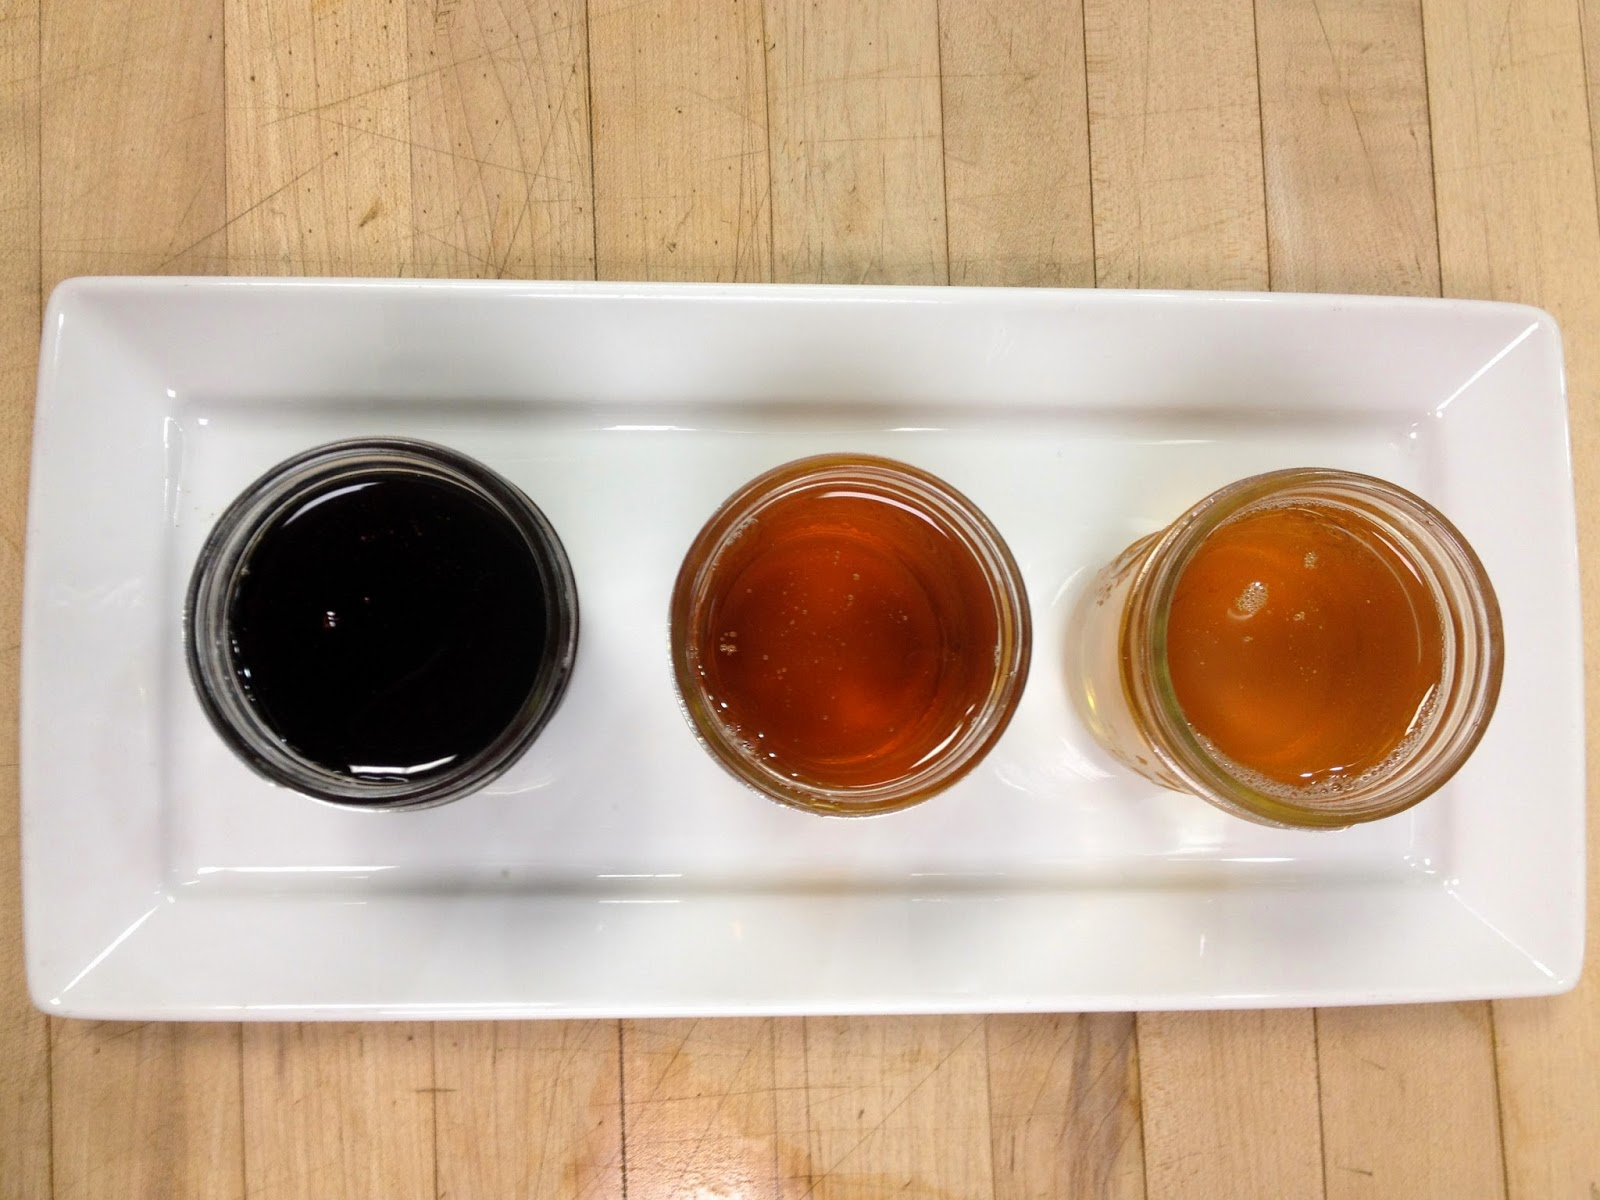 5fb2ec93f7a Each of the syrups below were boiled down to the same exact sugar content  but have different consistencies